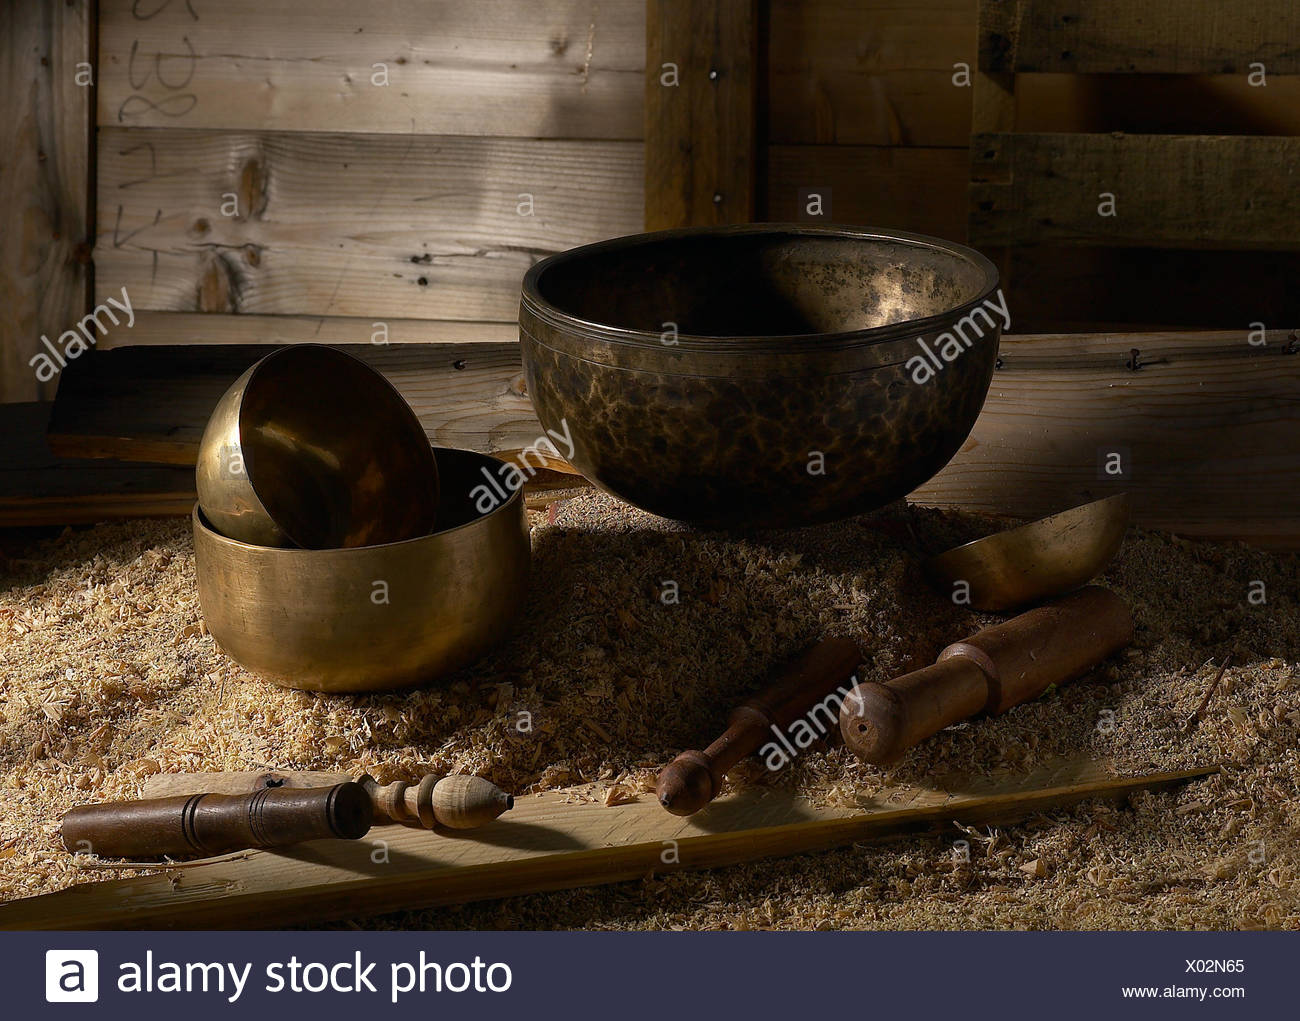 Close-Up Of Kitchen Utensils - Stock Image